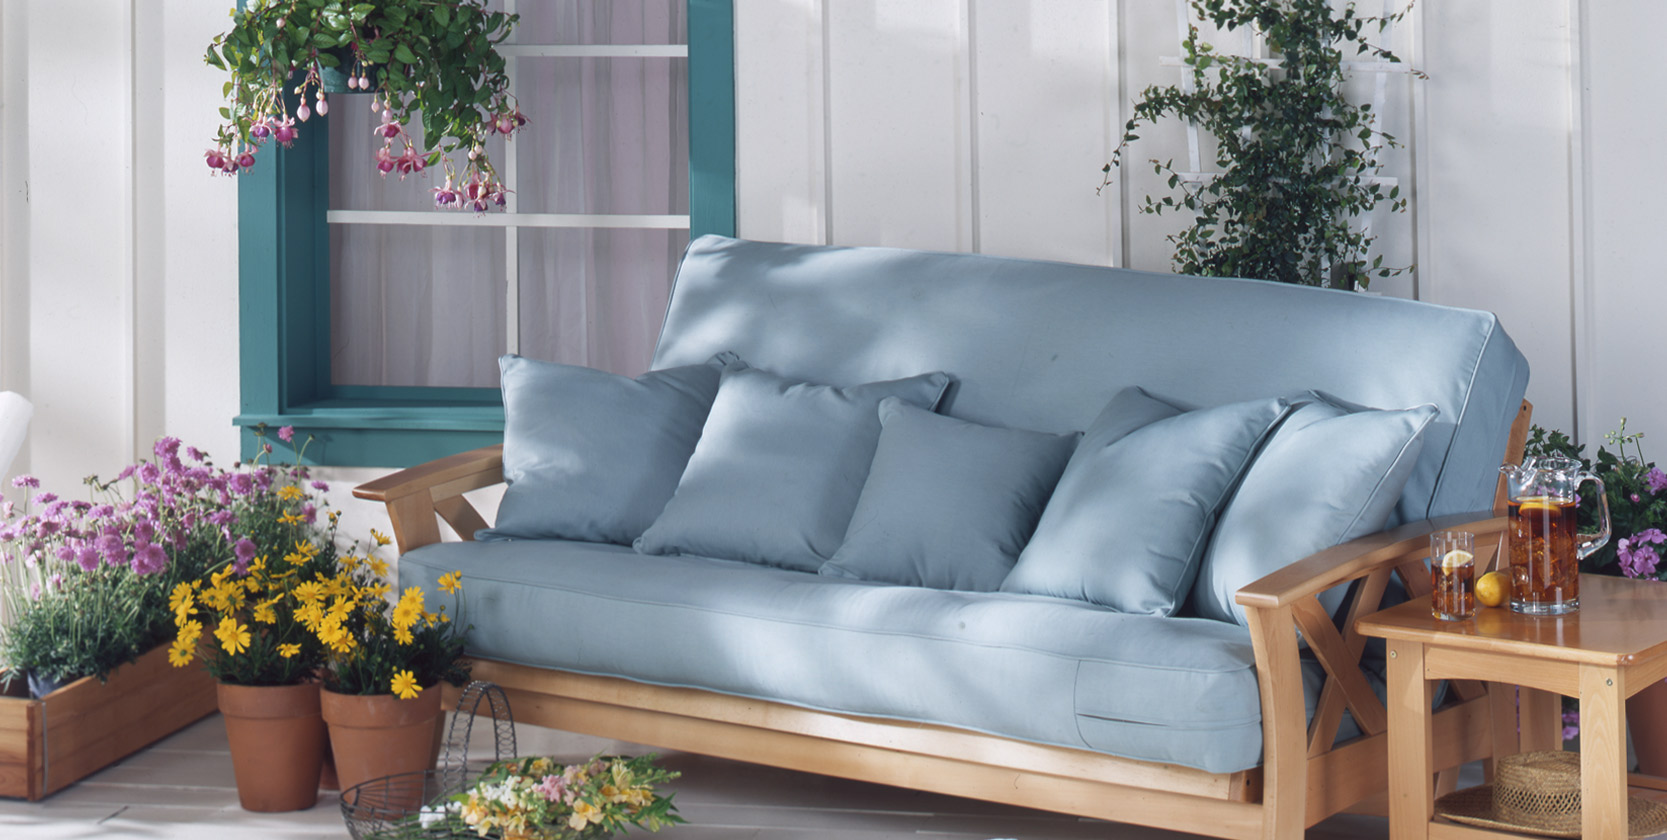 Futon Slipcovers and Pillows - Outdoor Fabrics